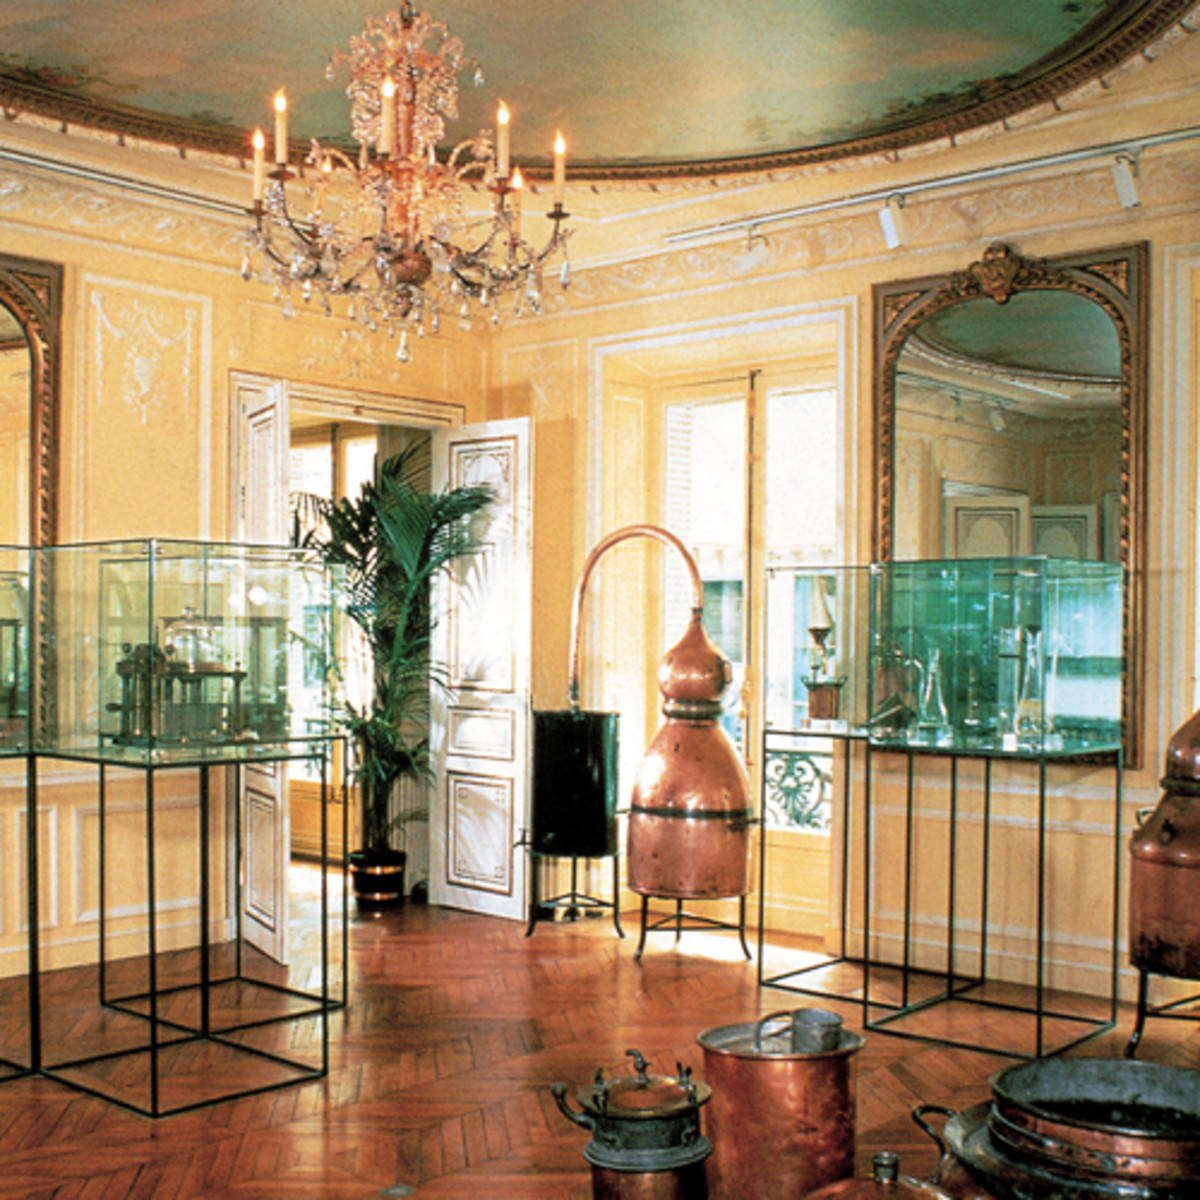 Interior of Fragonard museum of perfume